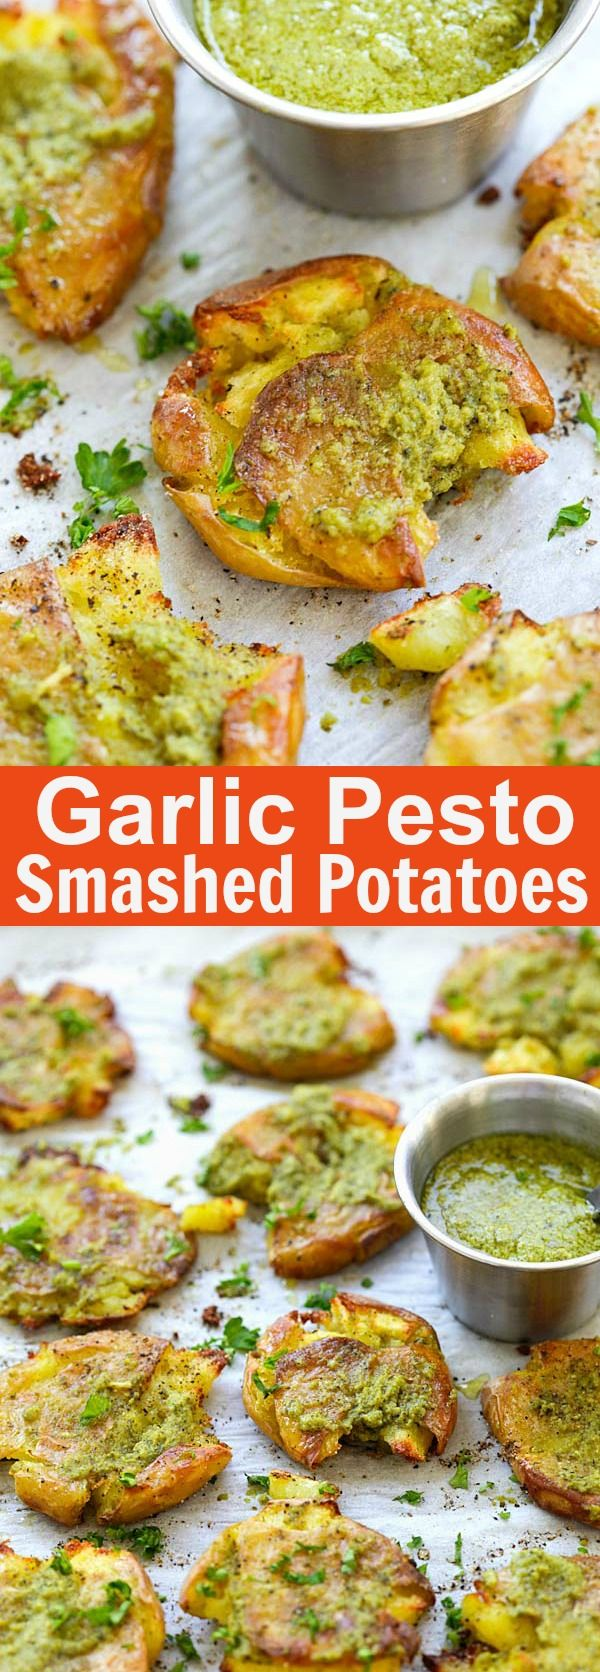 Garlic Pesto Smashed Potatoes – the best potatoes recipe ever with smashed baby potatoes topped with delicious garlic pesto. So good | rasamalaysia.com